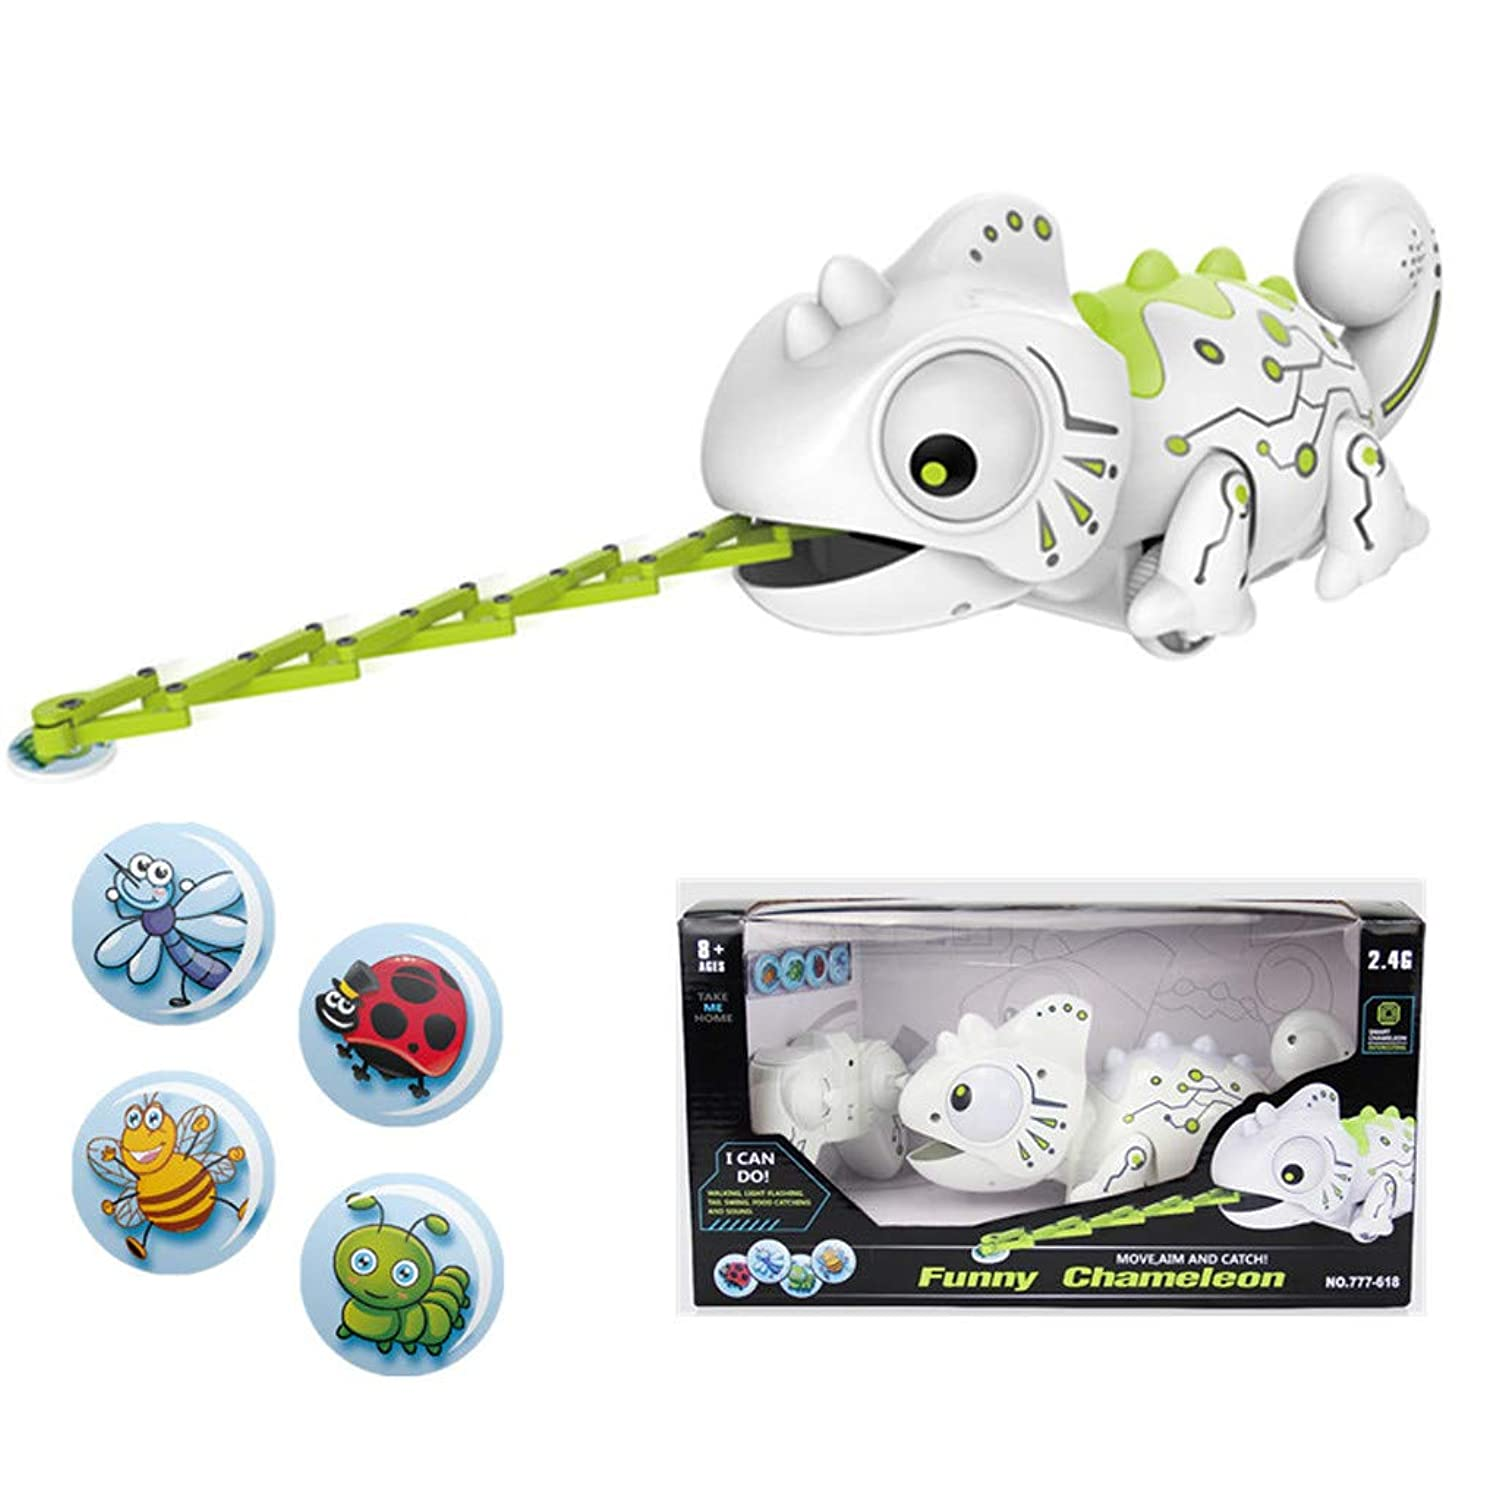 Onefa Smart Chameleon Robotic Can Eat Things Function Cute Toy Electronic Pets Feeding Function Cute Toy Gifts Idea for Kids Interactive Smart Robotic (Multicolor) wrifjk3830611